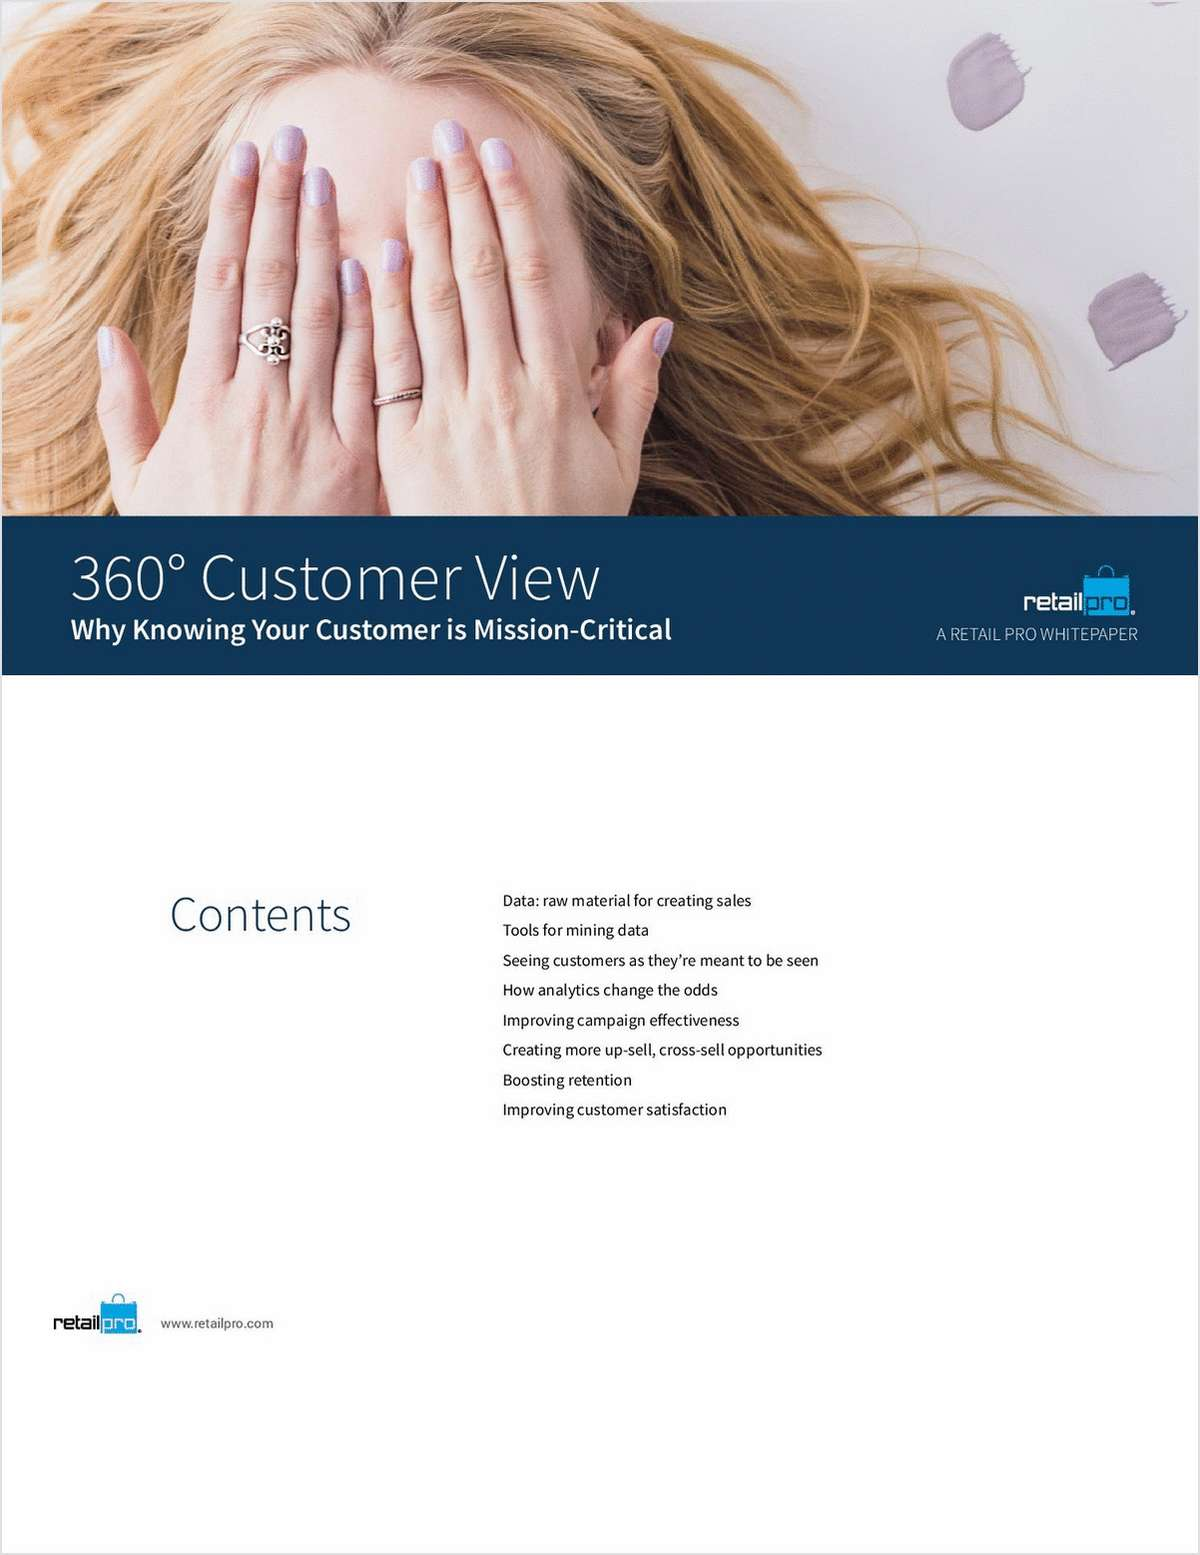 360° Customer View: Why Knowing Your Customer is Mission-Critical